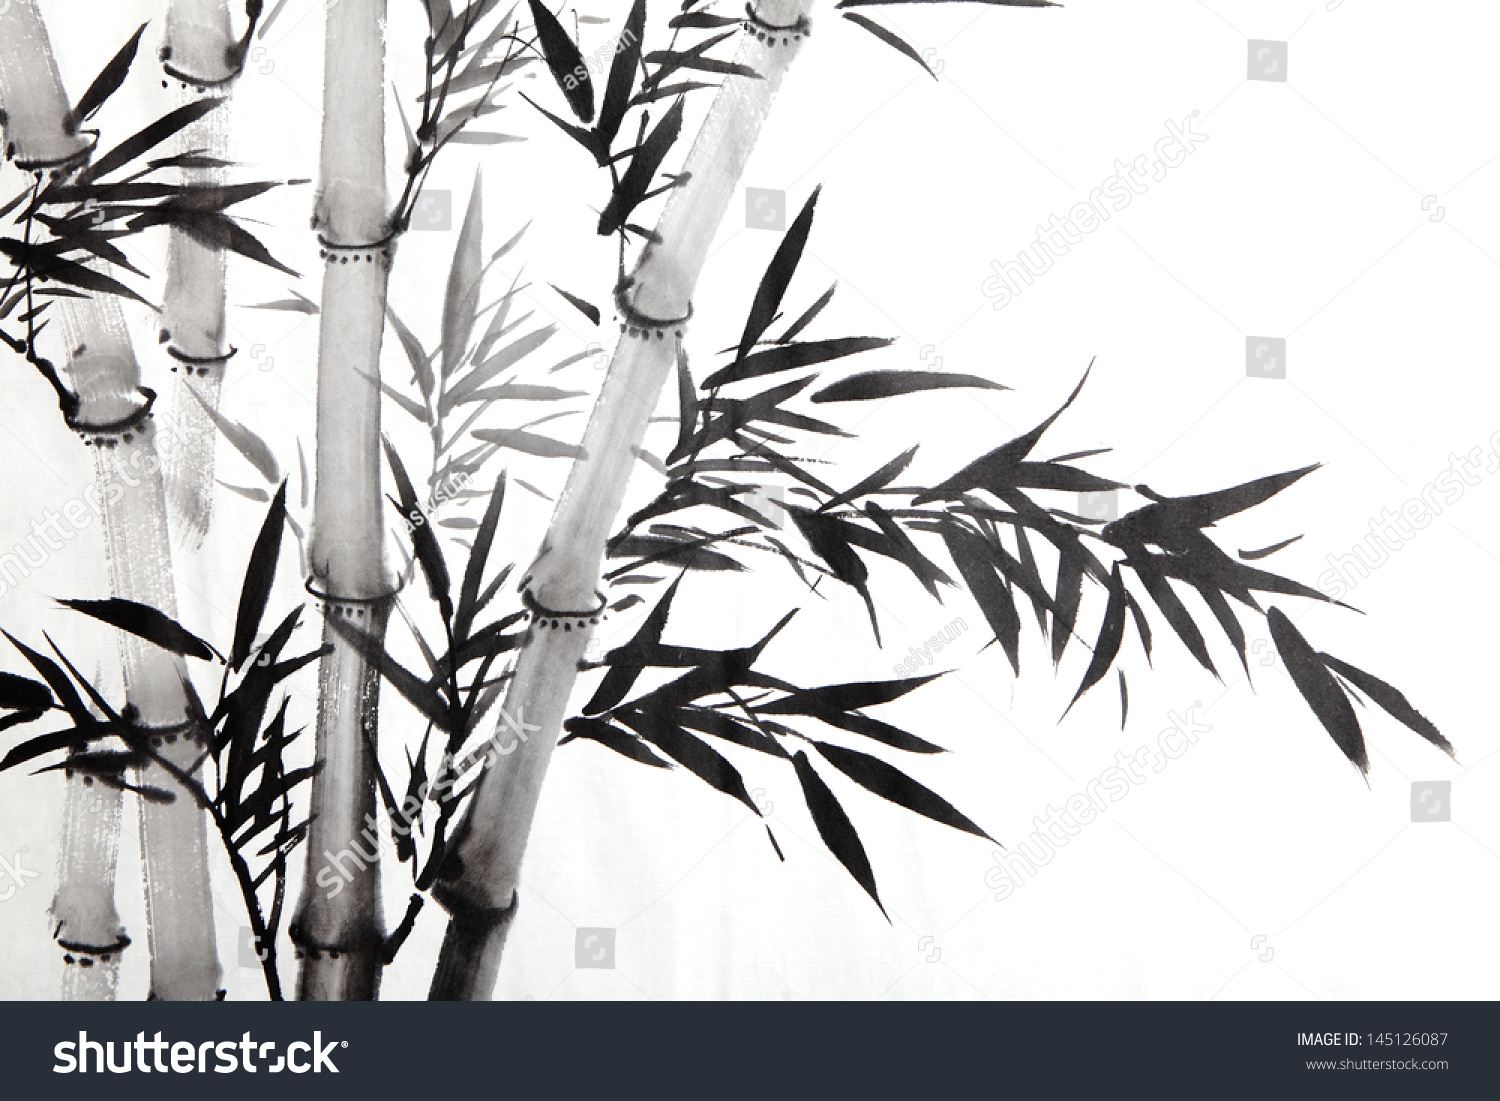 Bamboo Leaf Traditional Chinese Calligraphy Art Stock